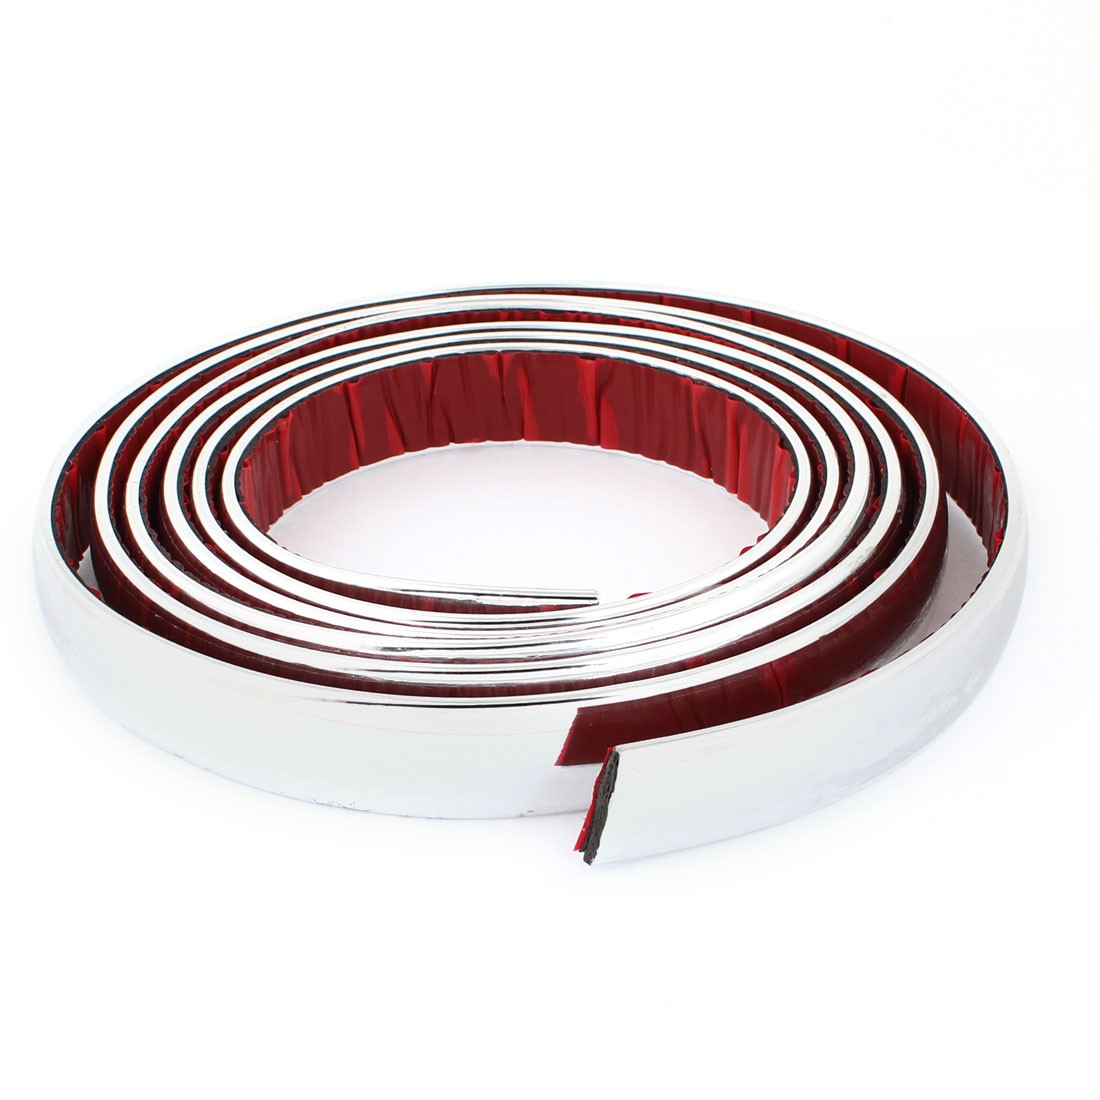 3 Meters 26m Wide Silver Tone Flexible Trim Strip Line for Car